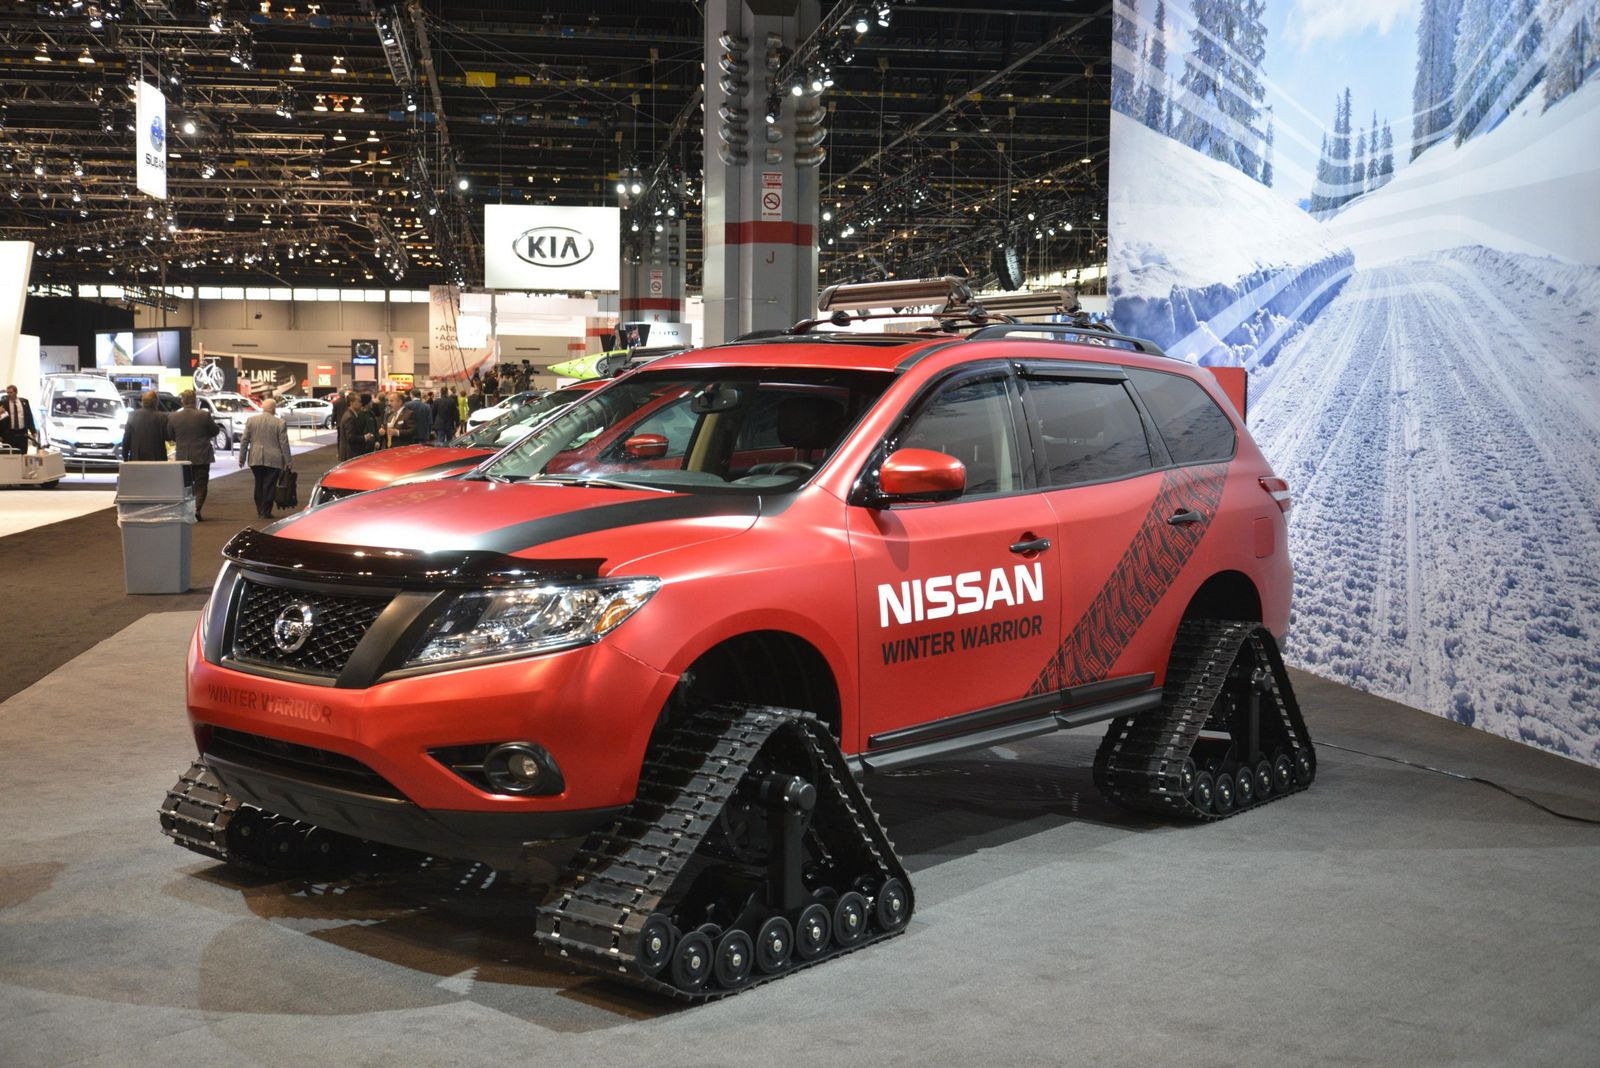 Nissan S Winter Warrior Concepts Are Suv Sized Snowmobiles